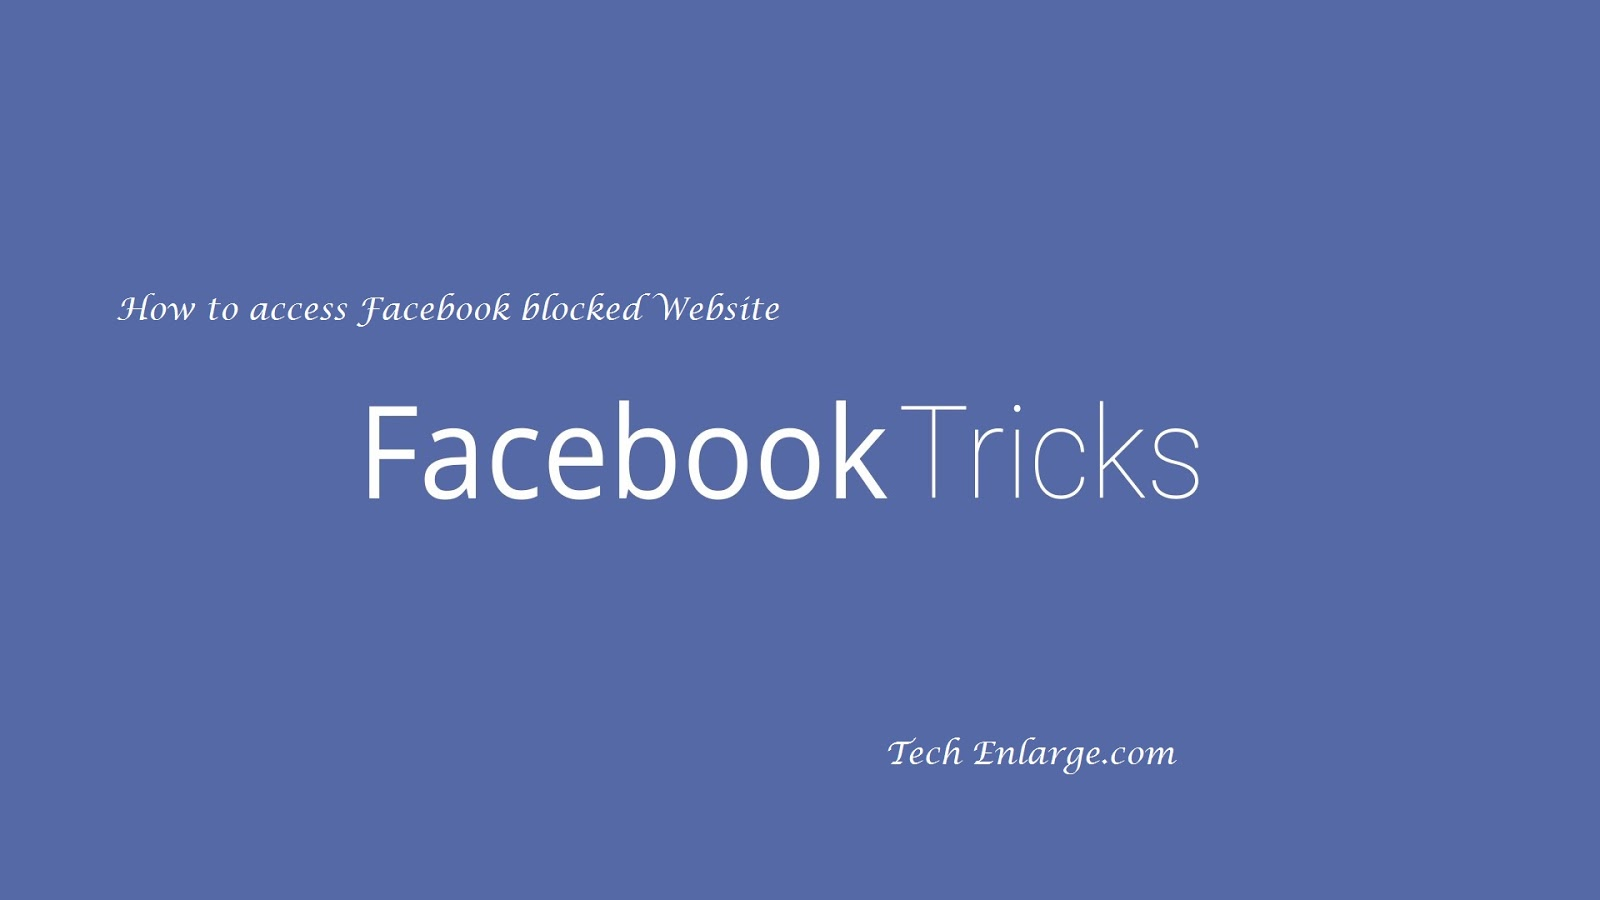 How to access blocked websites like facebook tech enlarge how to access blocked websites like facebook ccuart Gallery